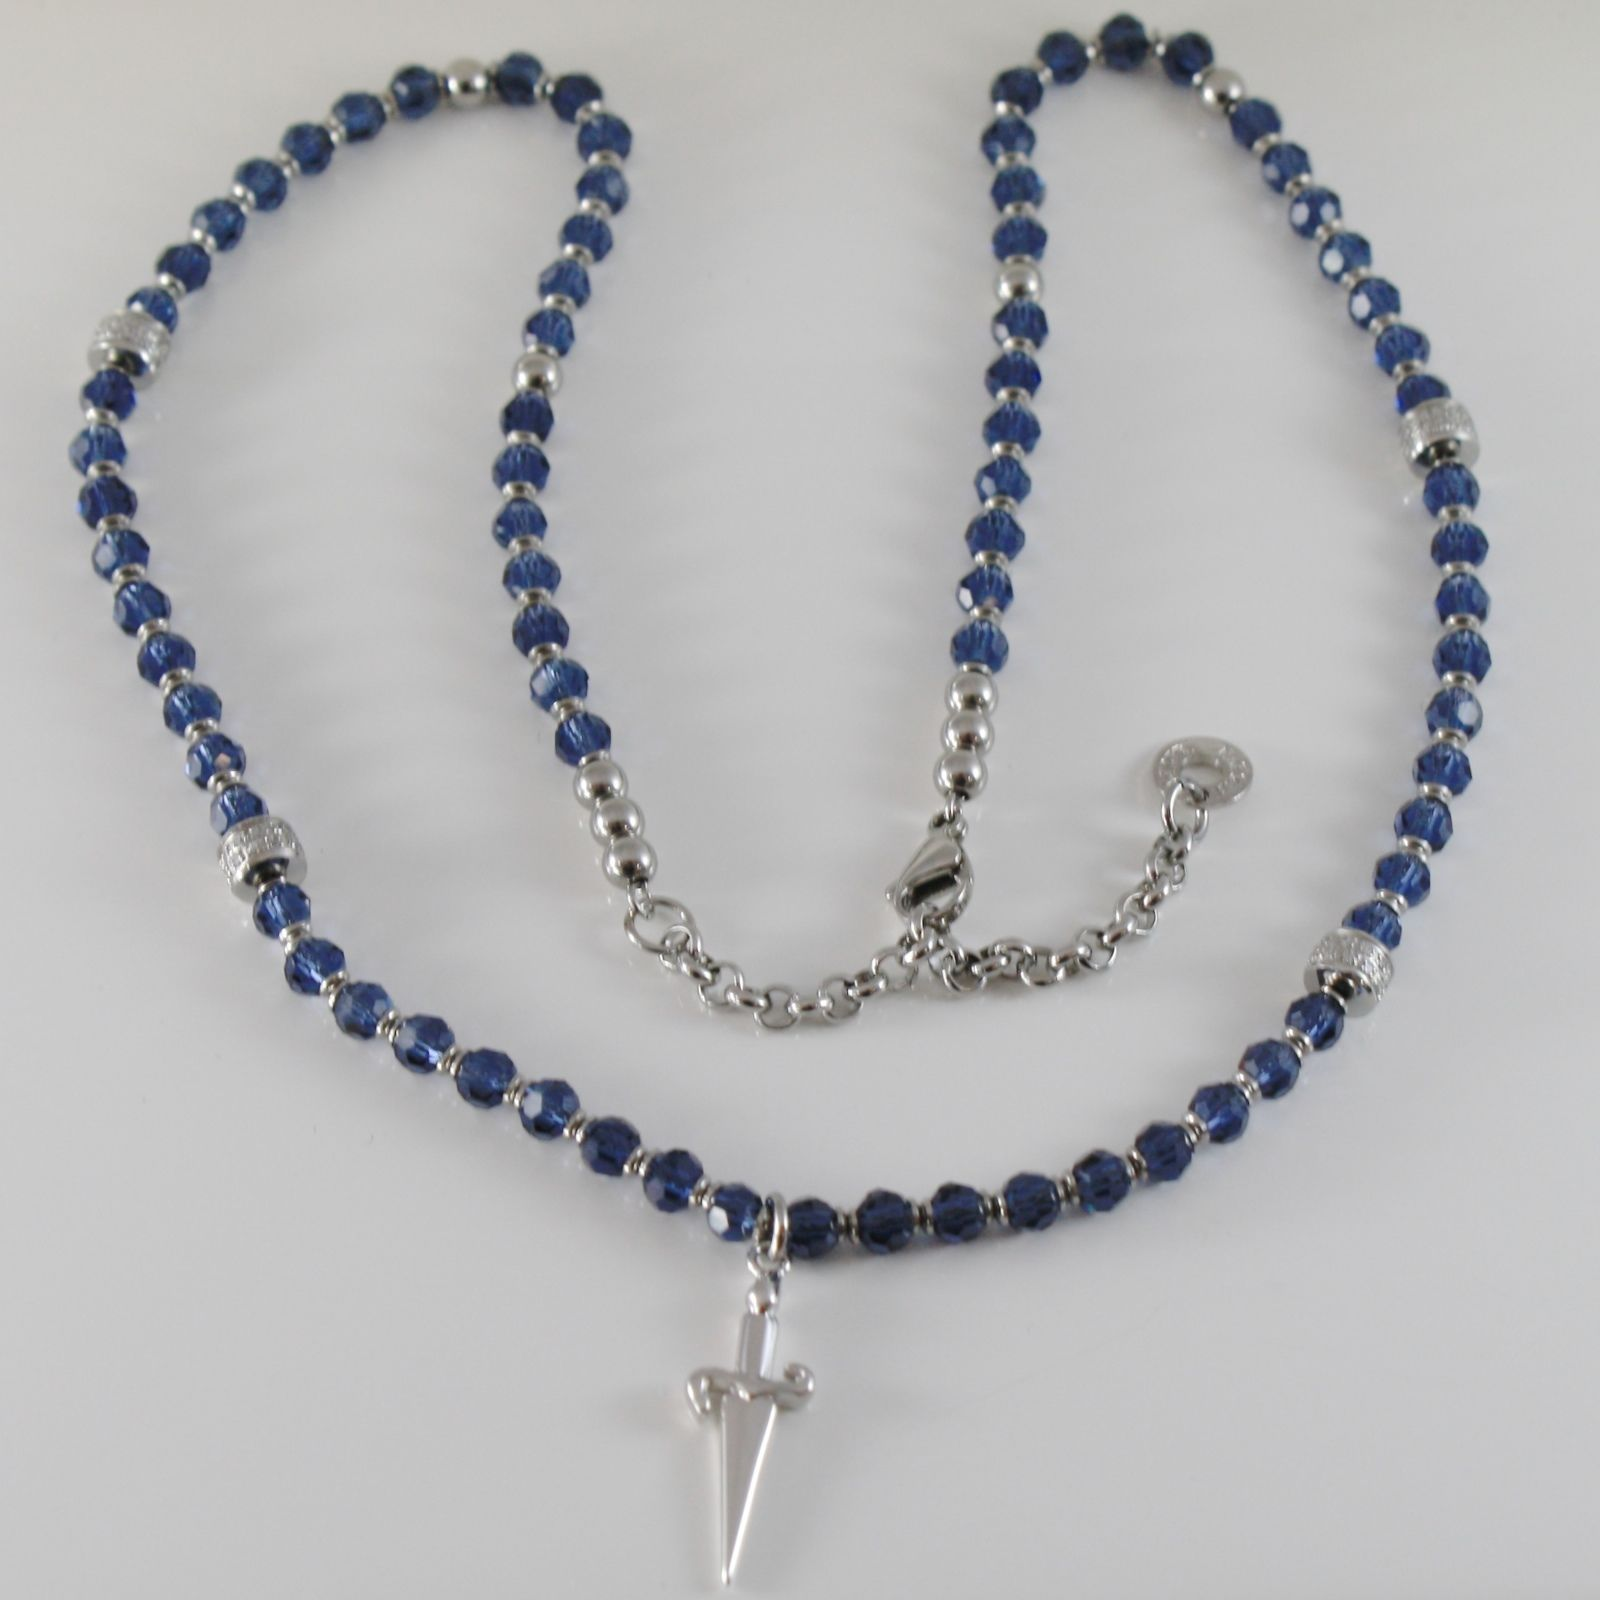 925 STERLING SILVER BLUE NECKLACE BY CESARE PACIOTTI, SWORD PENDANT, 22 INCHES